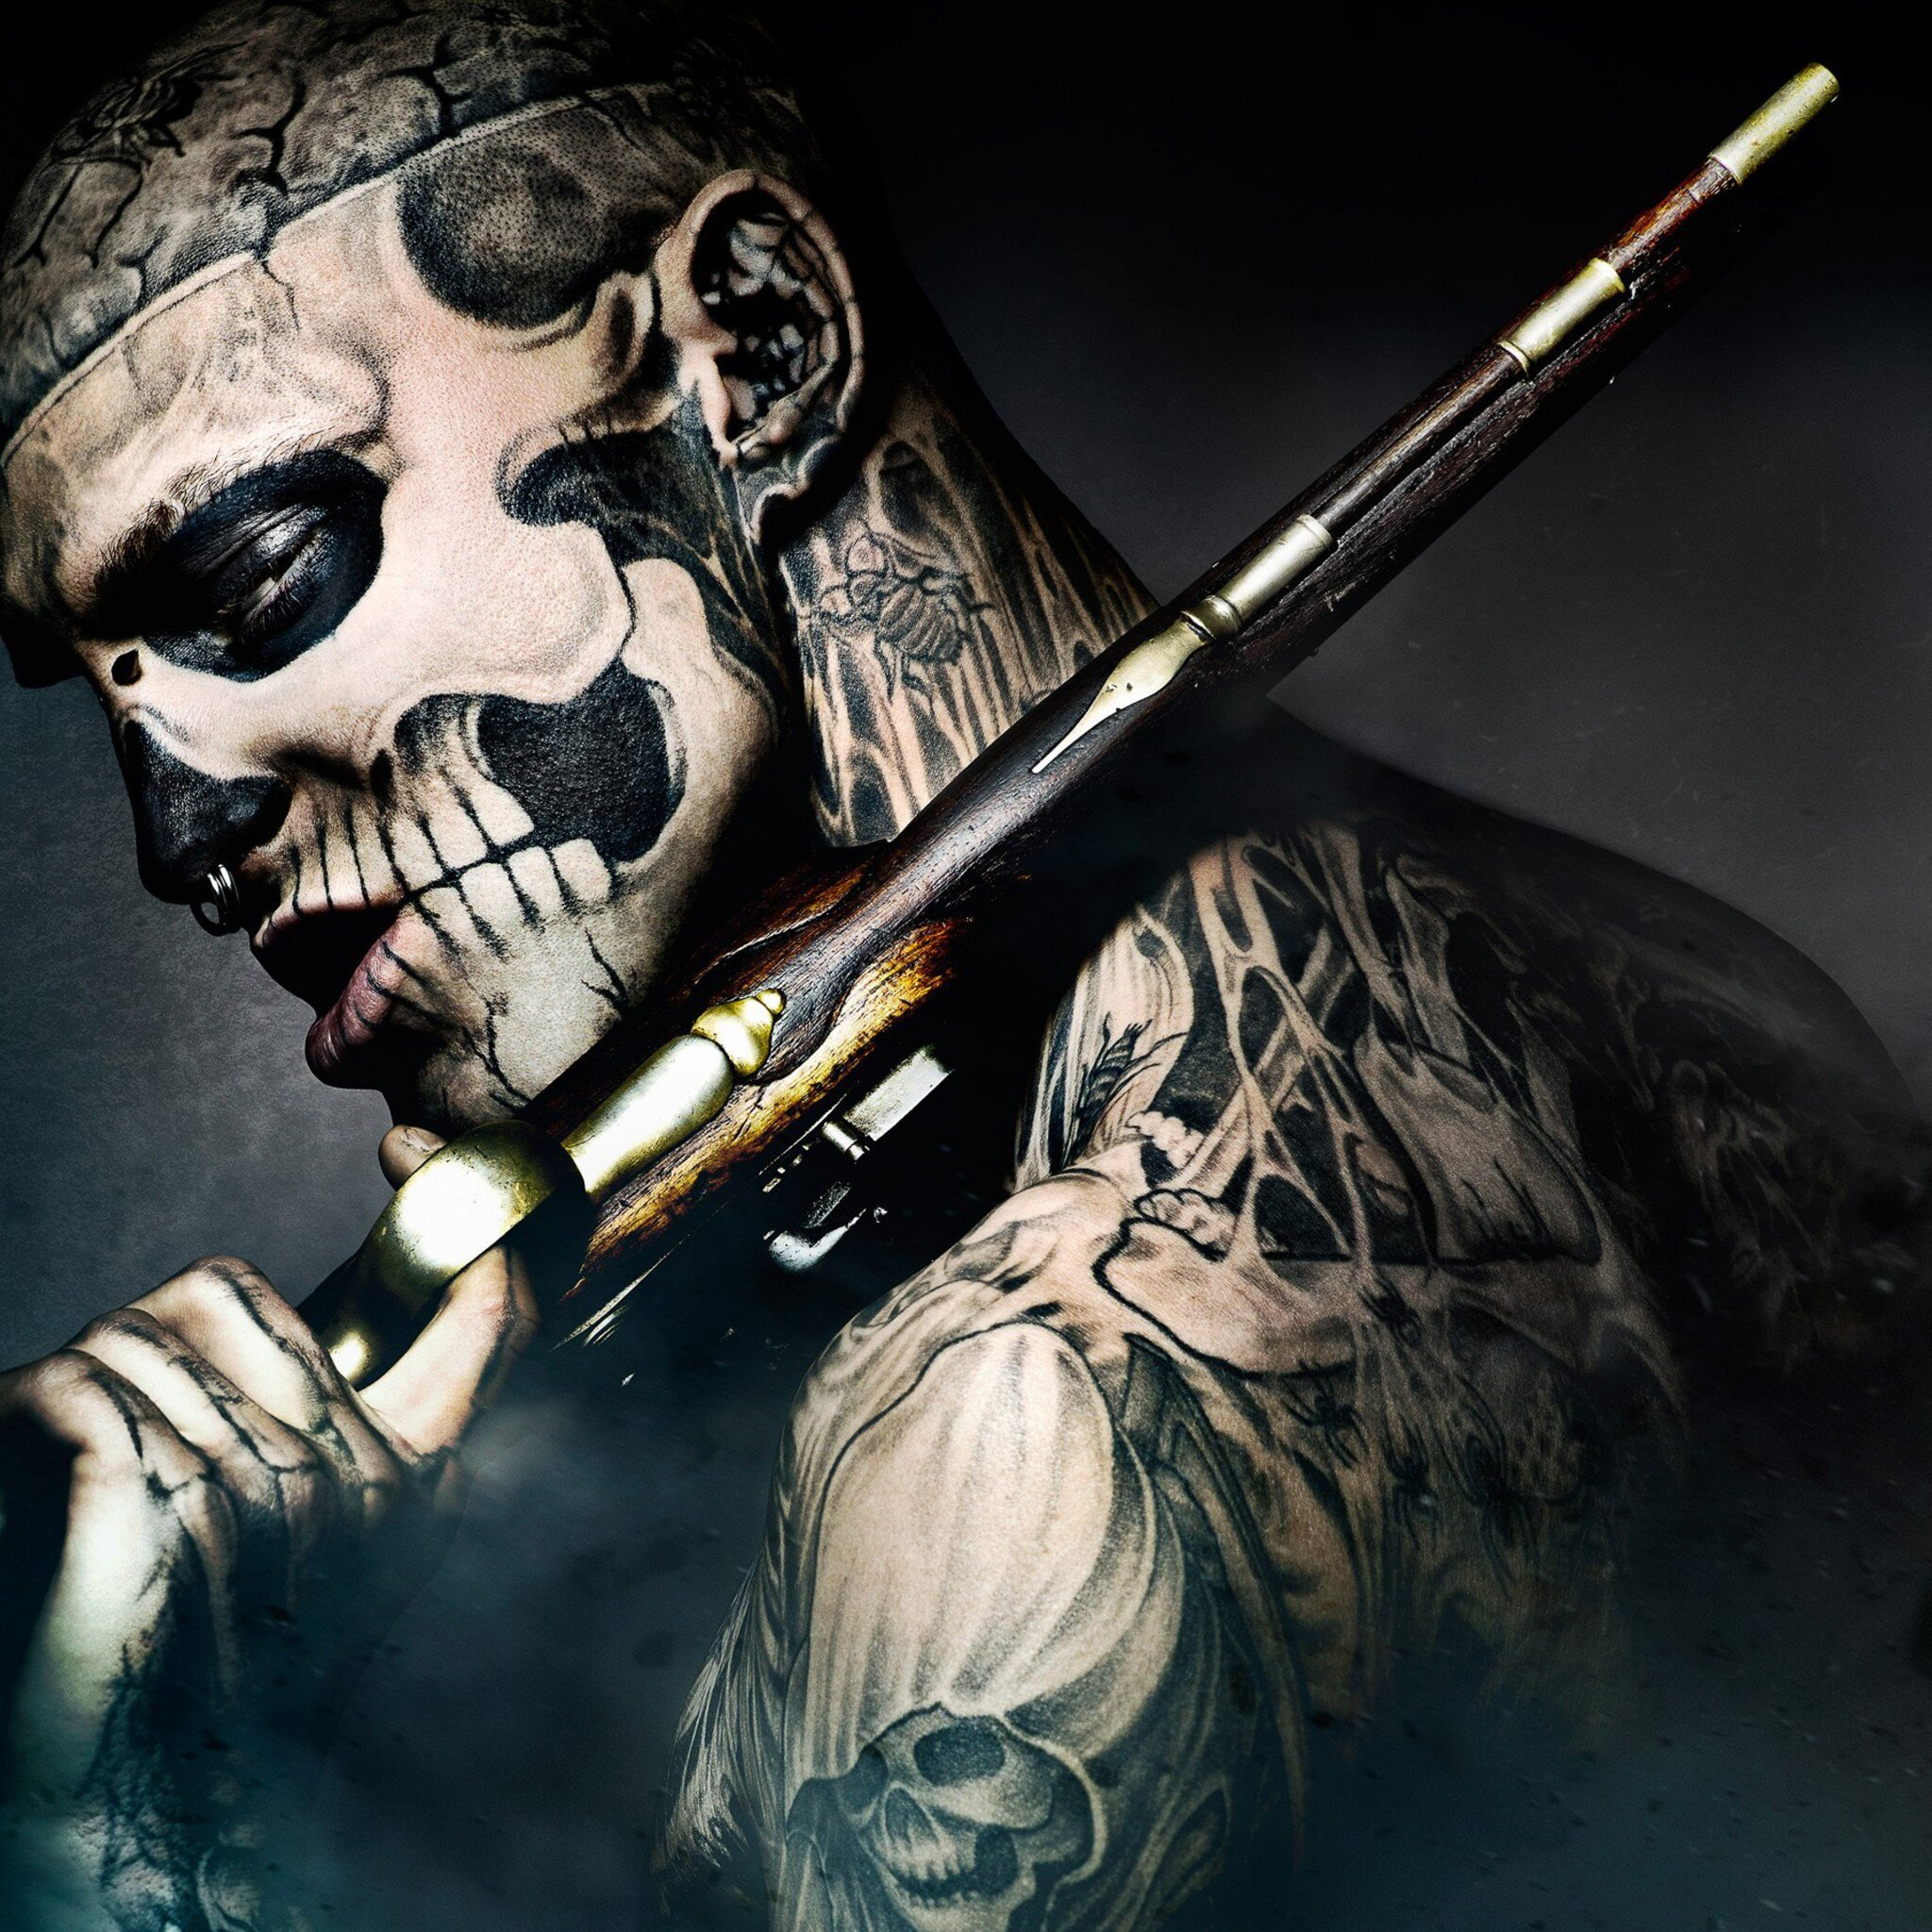 Hd Ink For Tattoos Wallpapers: 2048x2048 Ronin Freak Ipad Air HD 4k Wallpapers, Images